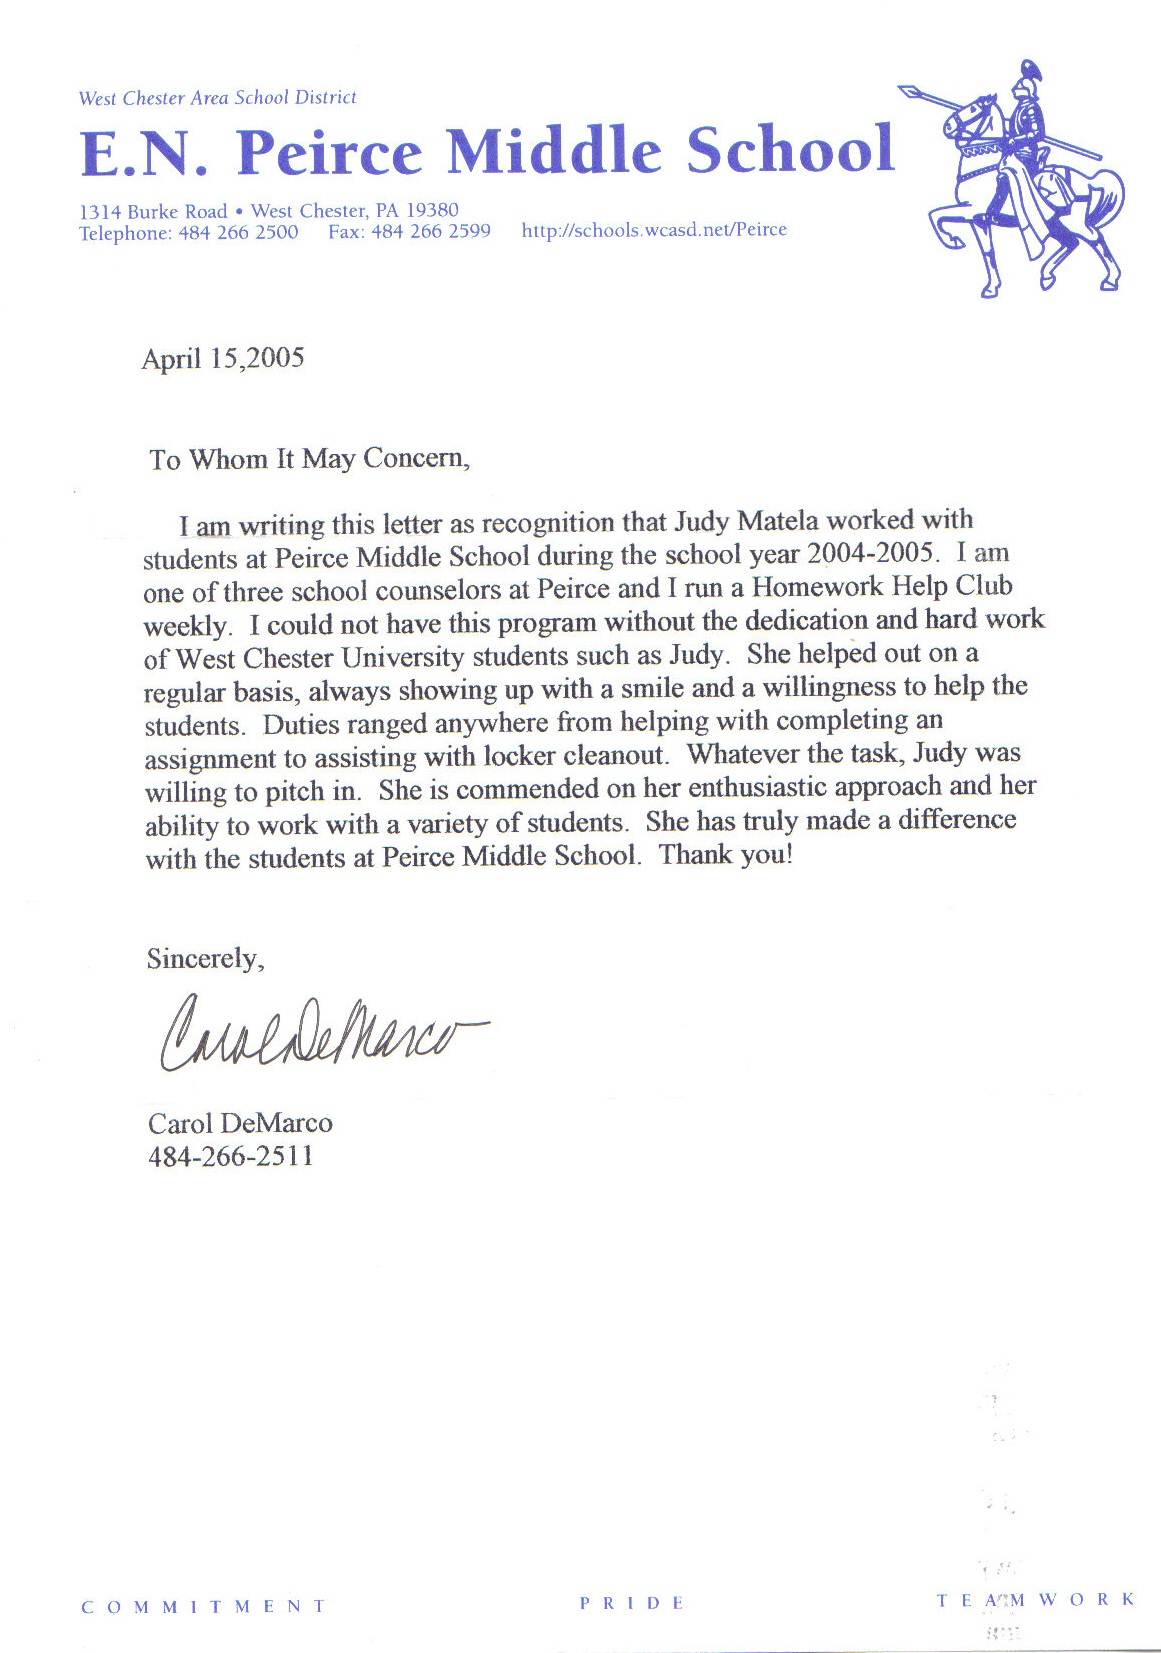 Reference Letter Template for Coworker - Letter Of Re Mendation for A Teacher From A Colleague Acur